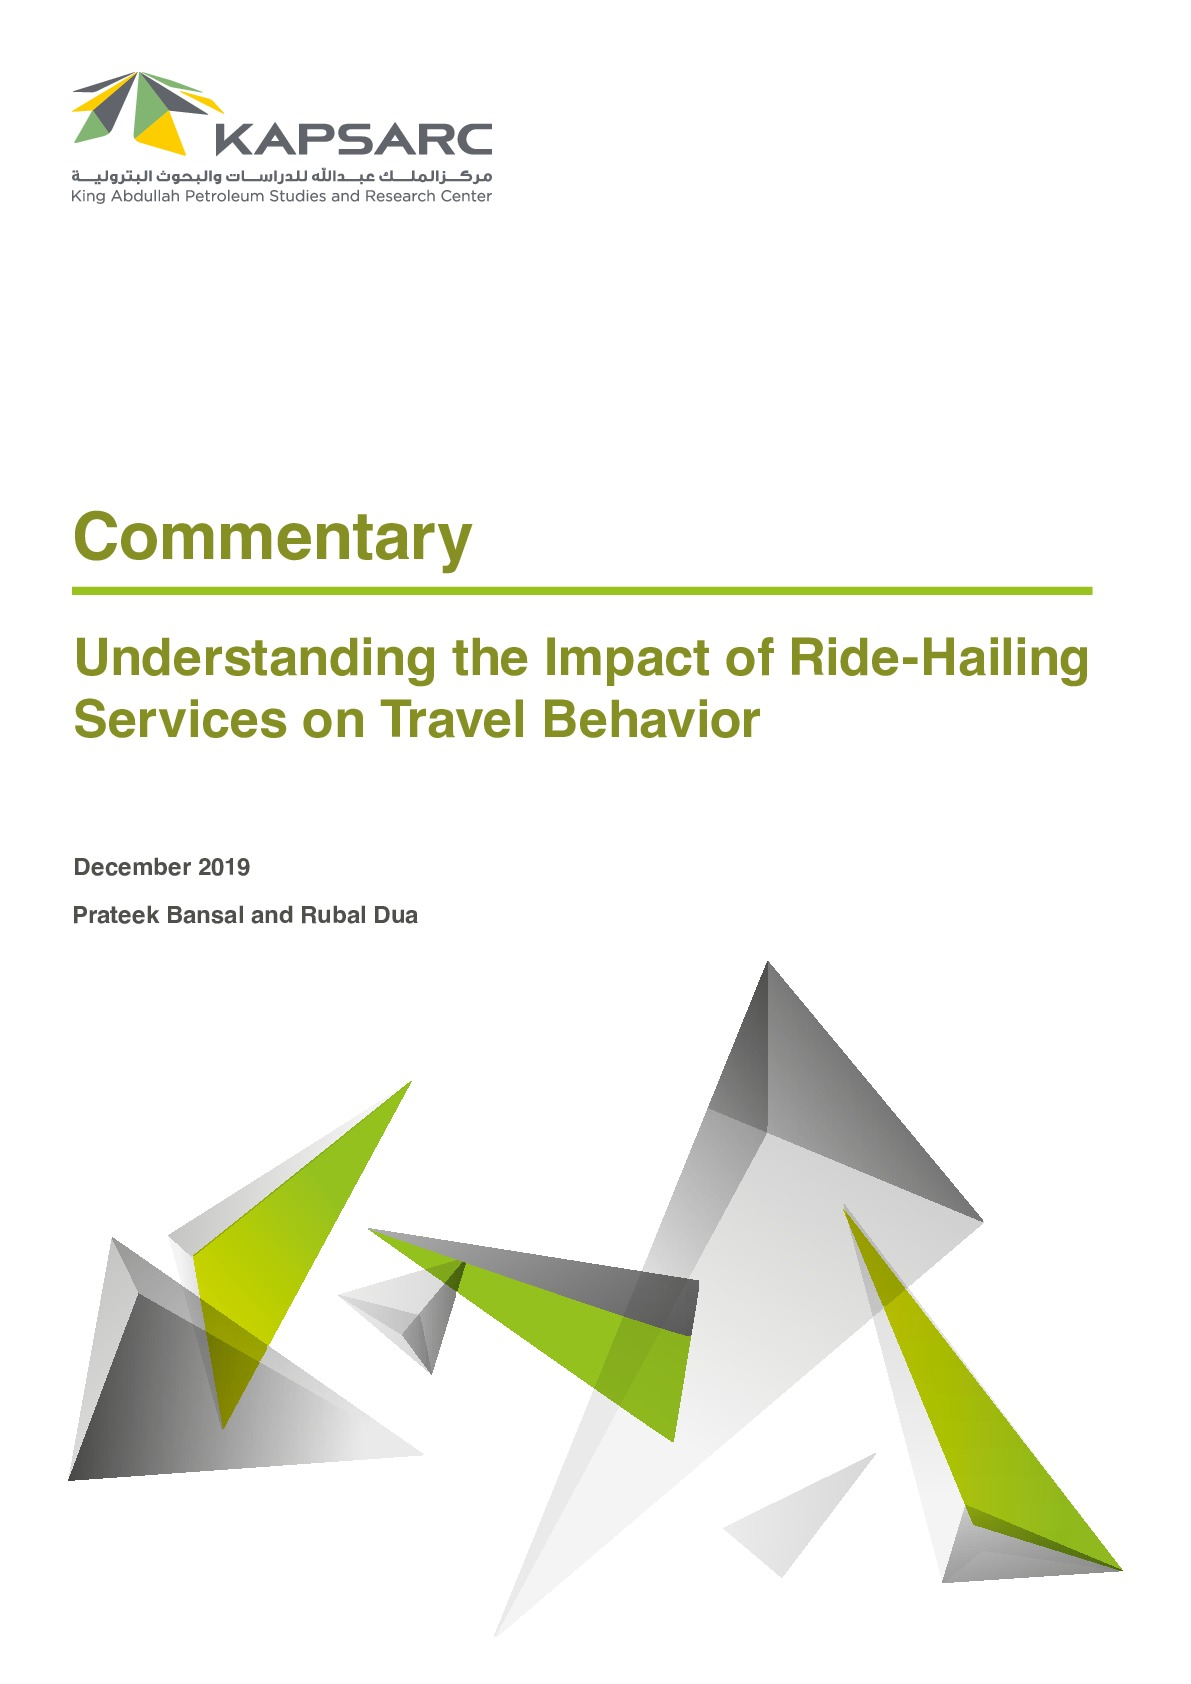 Understanding the Impact of Ride-Hailing Services on Travel Behavior